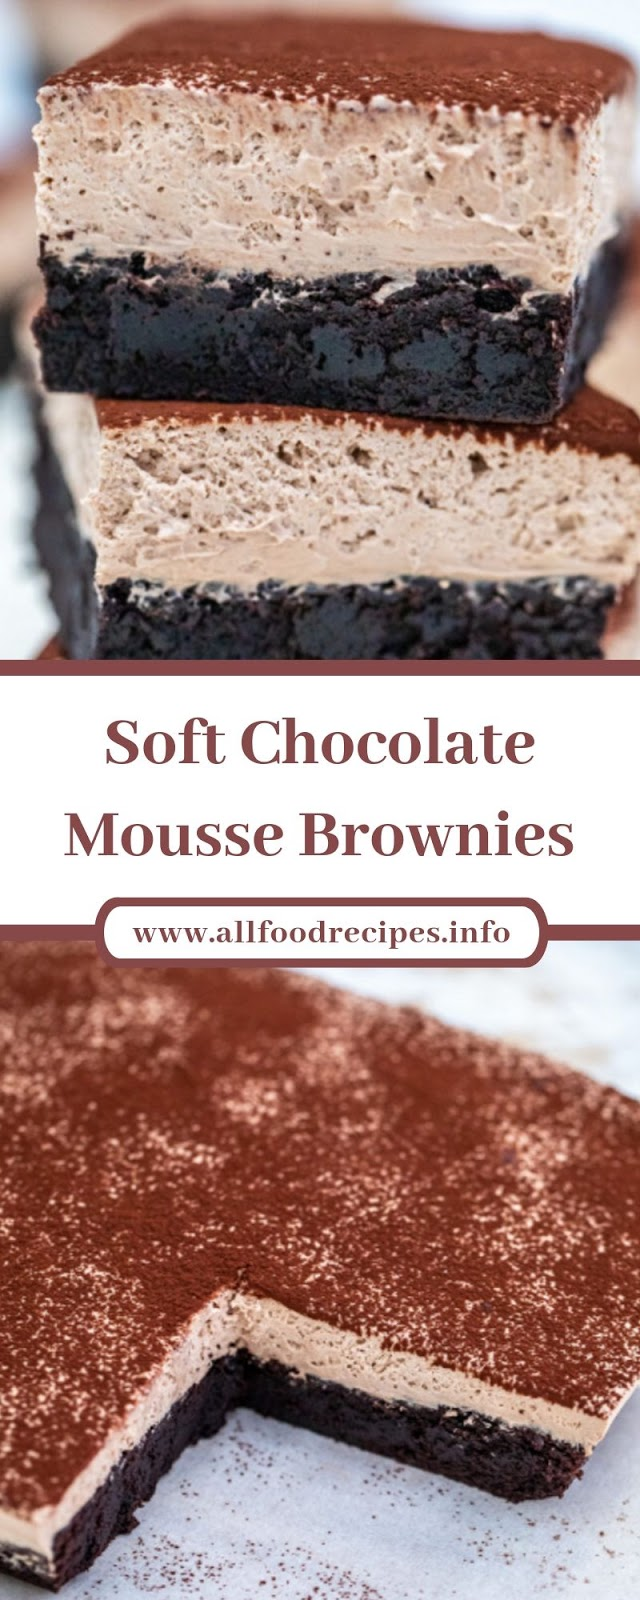 Soft Chocolate Mousse Brownies